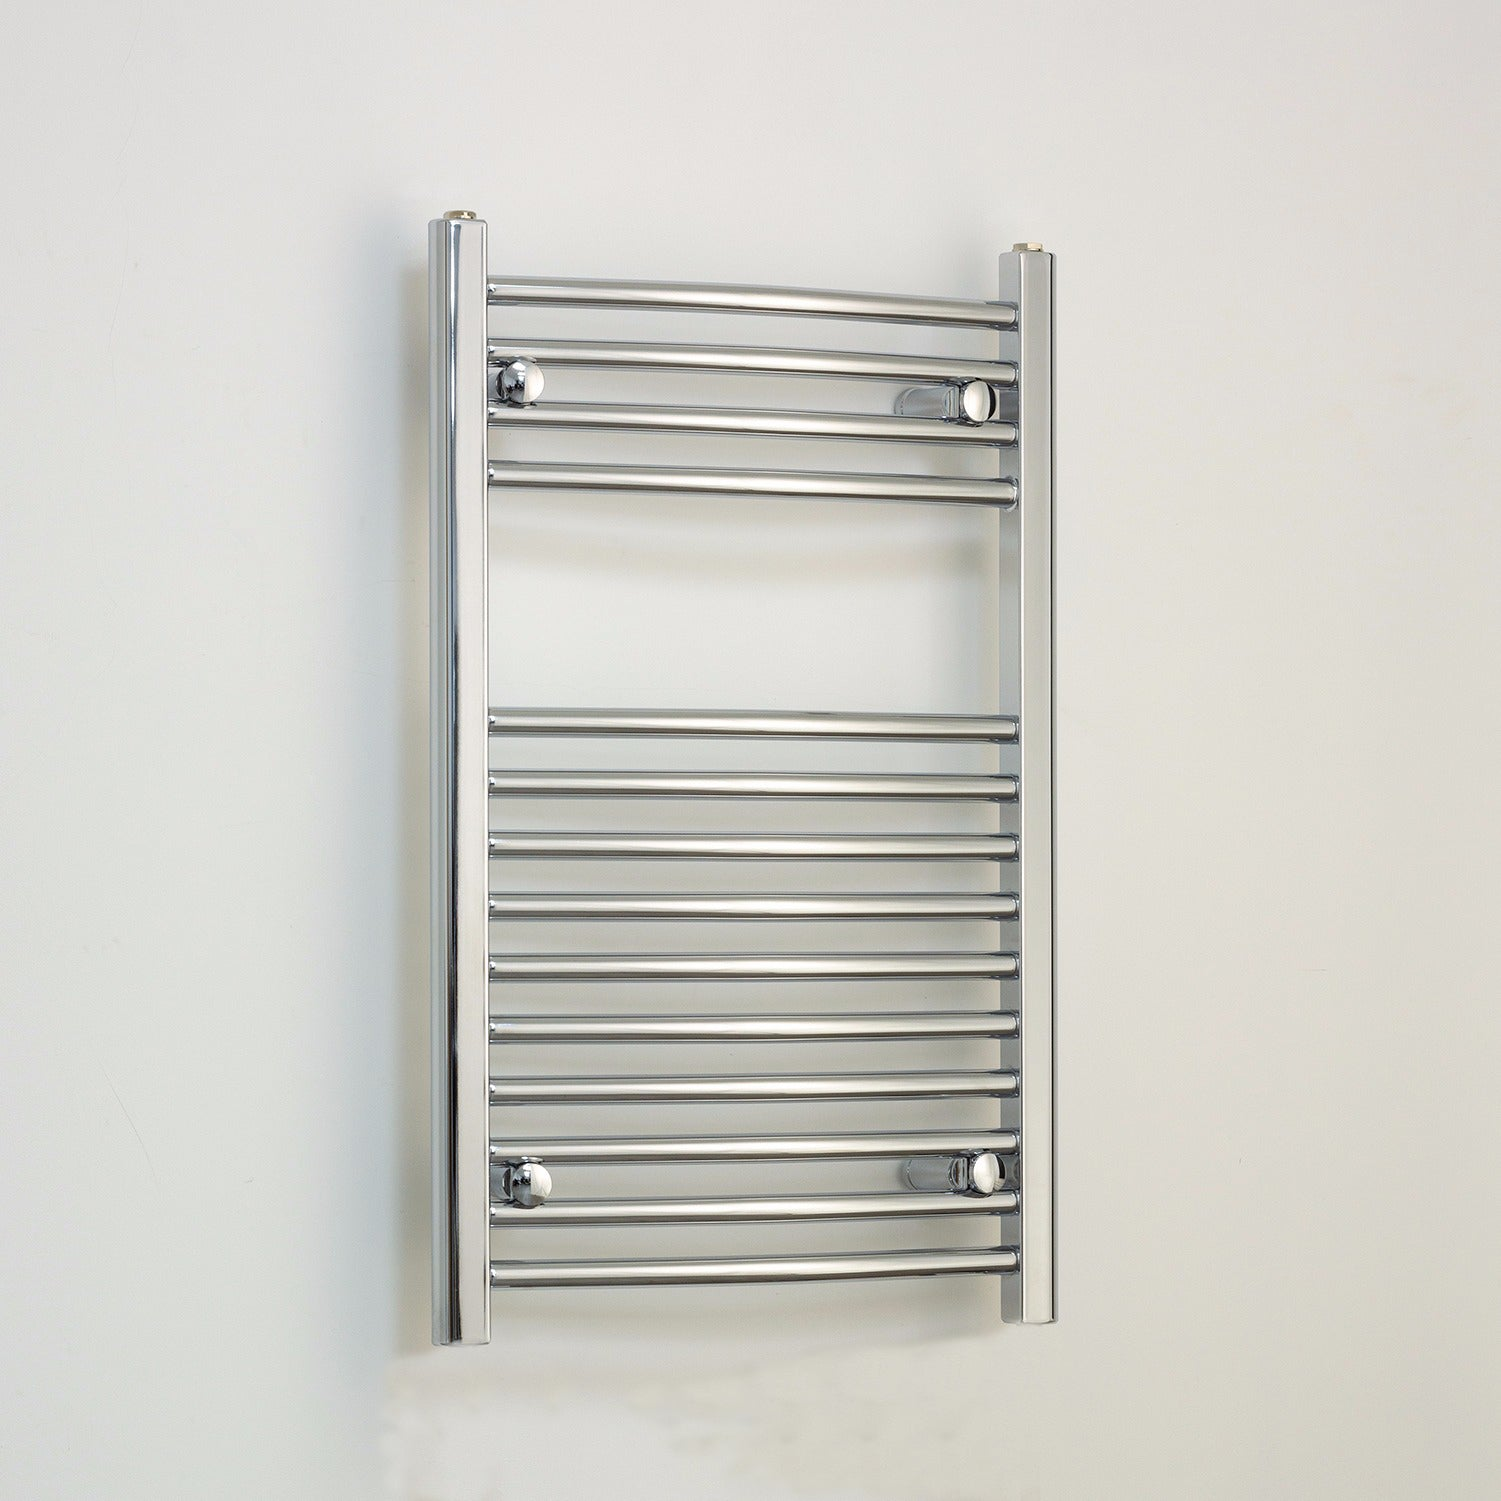 600mm Wide 800mm High Curved Chrome Heated Towel Rail Radiator HTR,Towel Rail Only